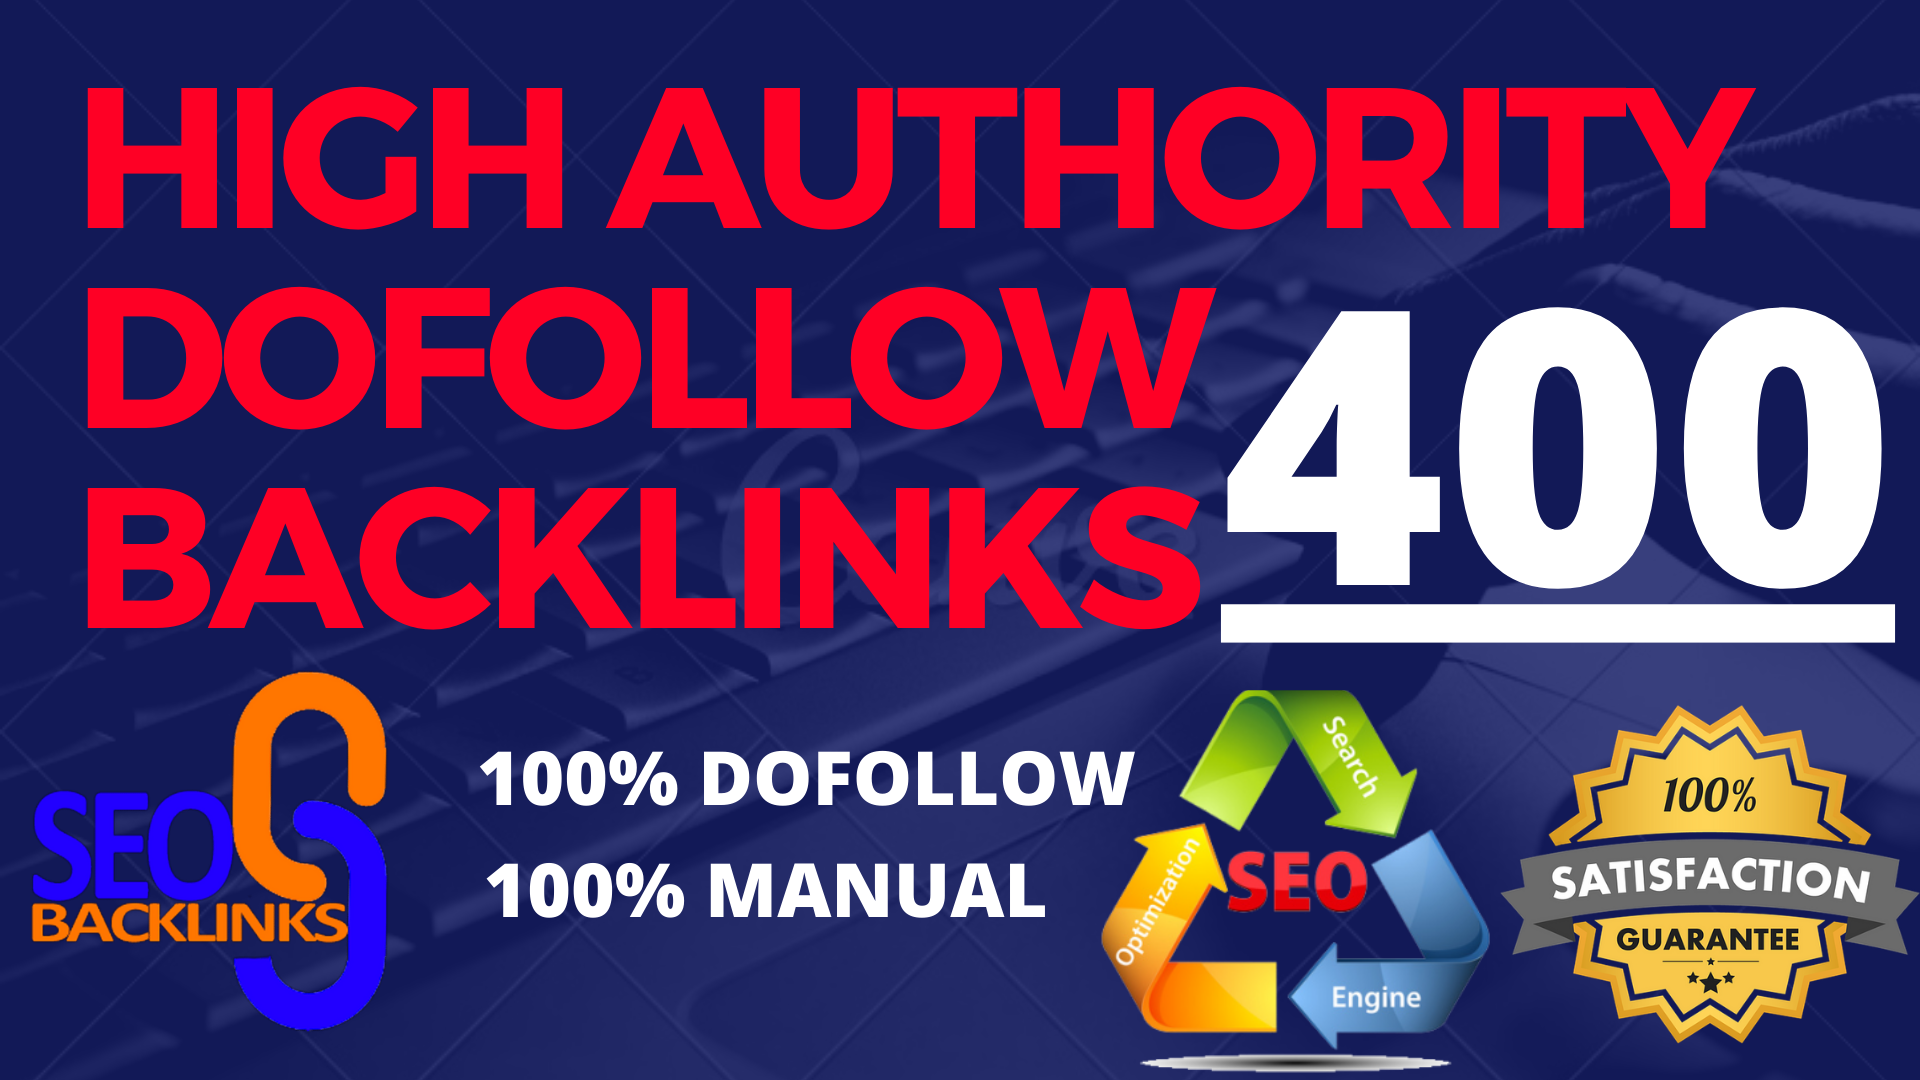 i will provide 400 high authority dofollow blog comment backlinks